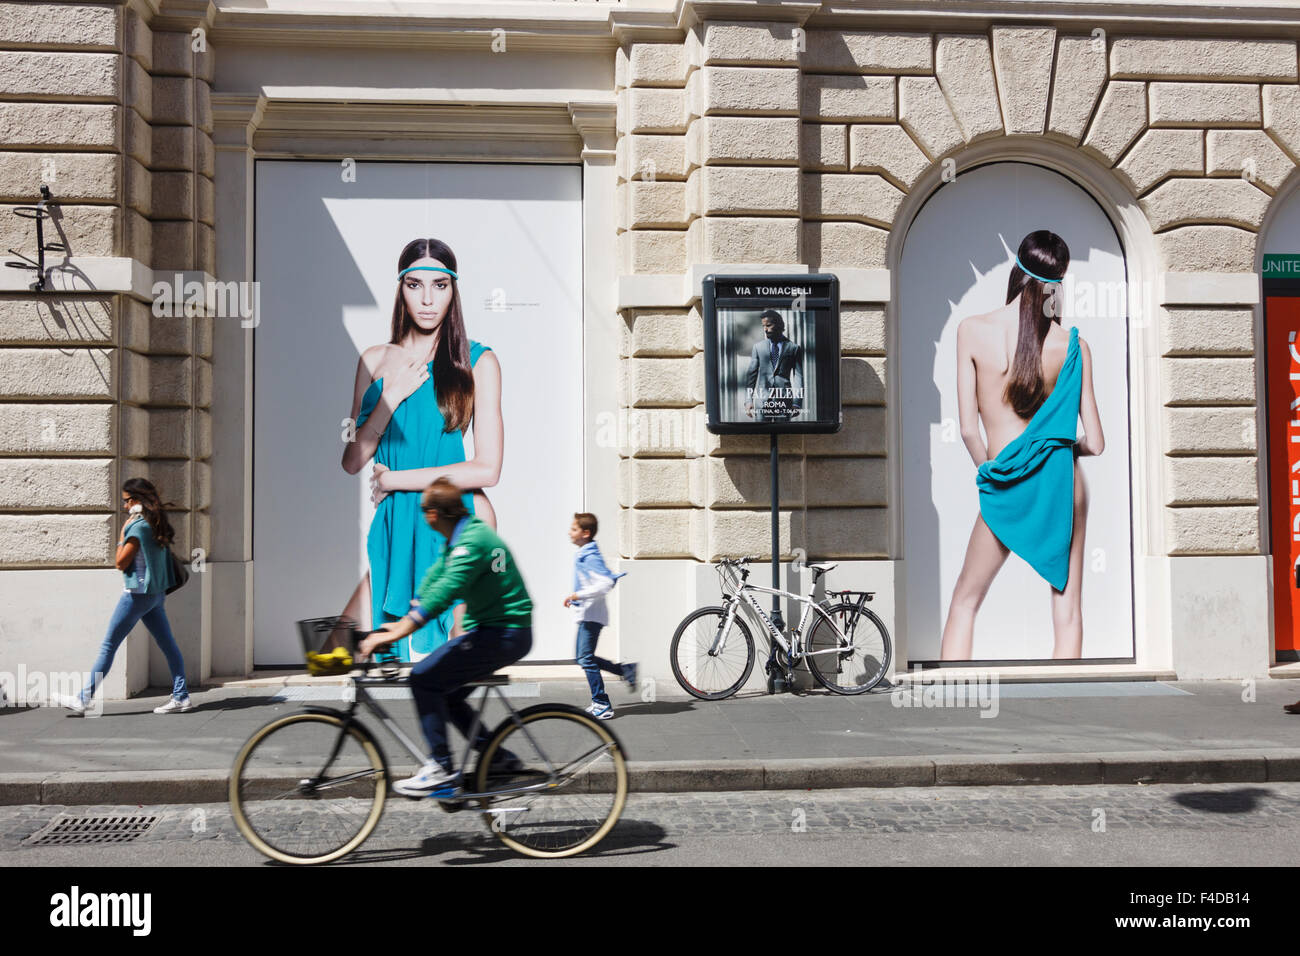 People walks past Benetton store at Via Tomacelli, Rome, Italy - Stock Image